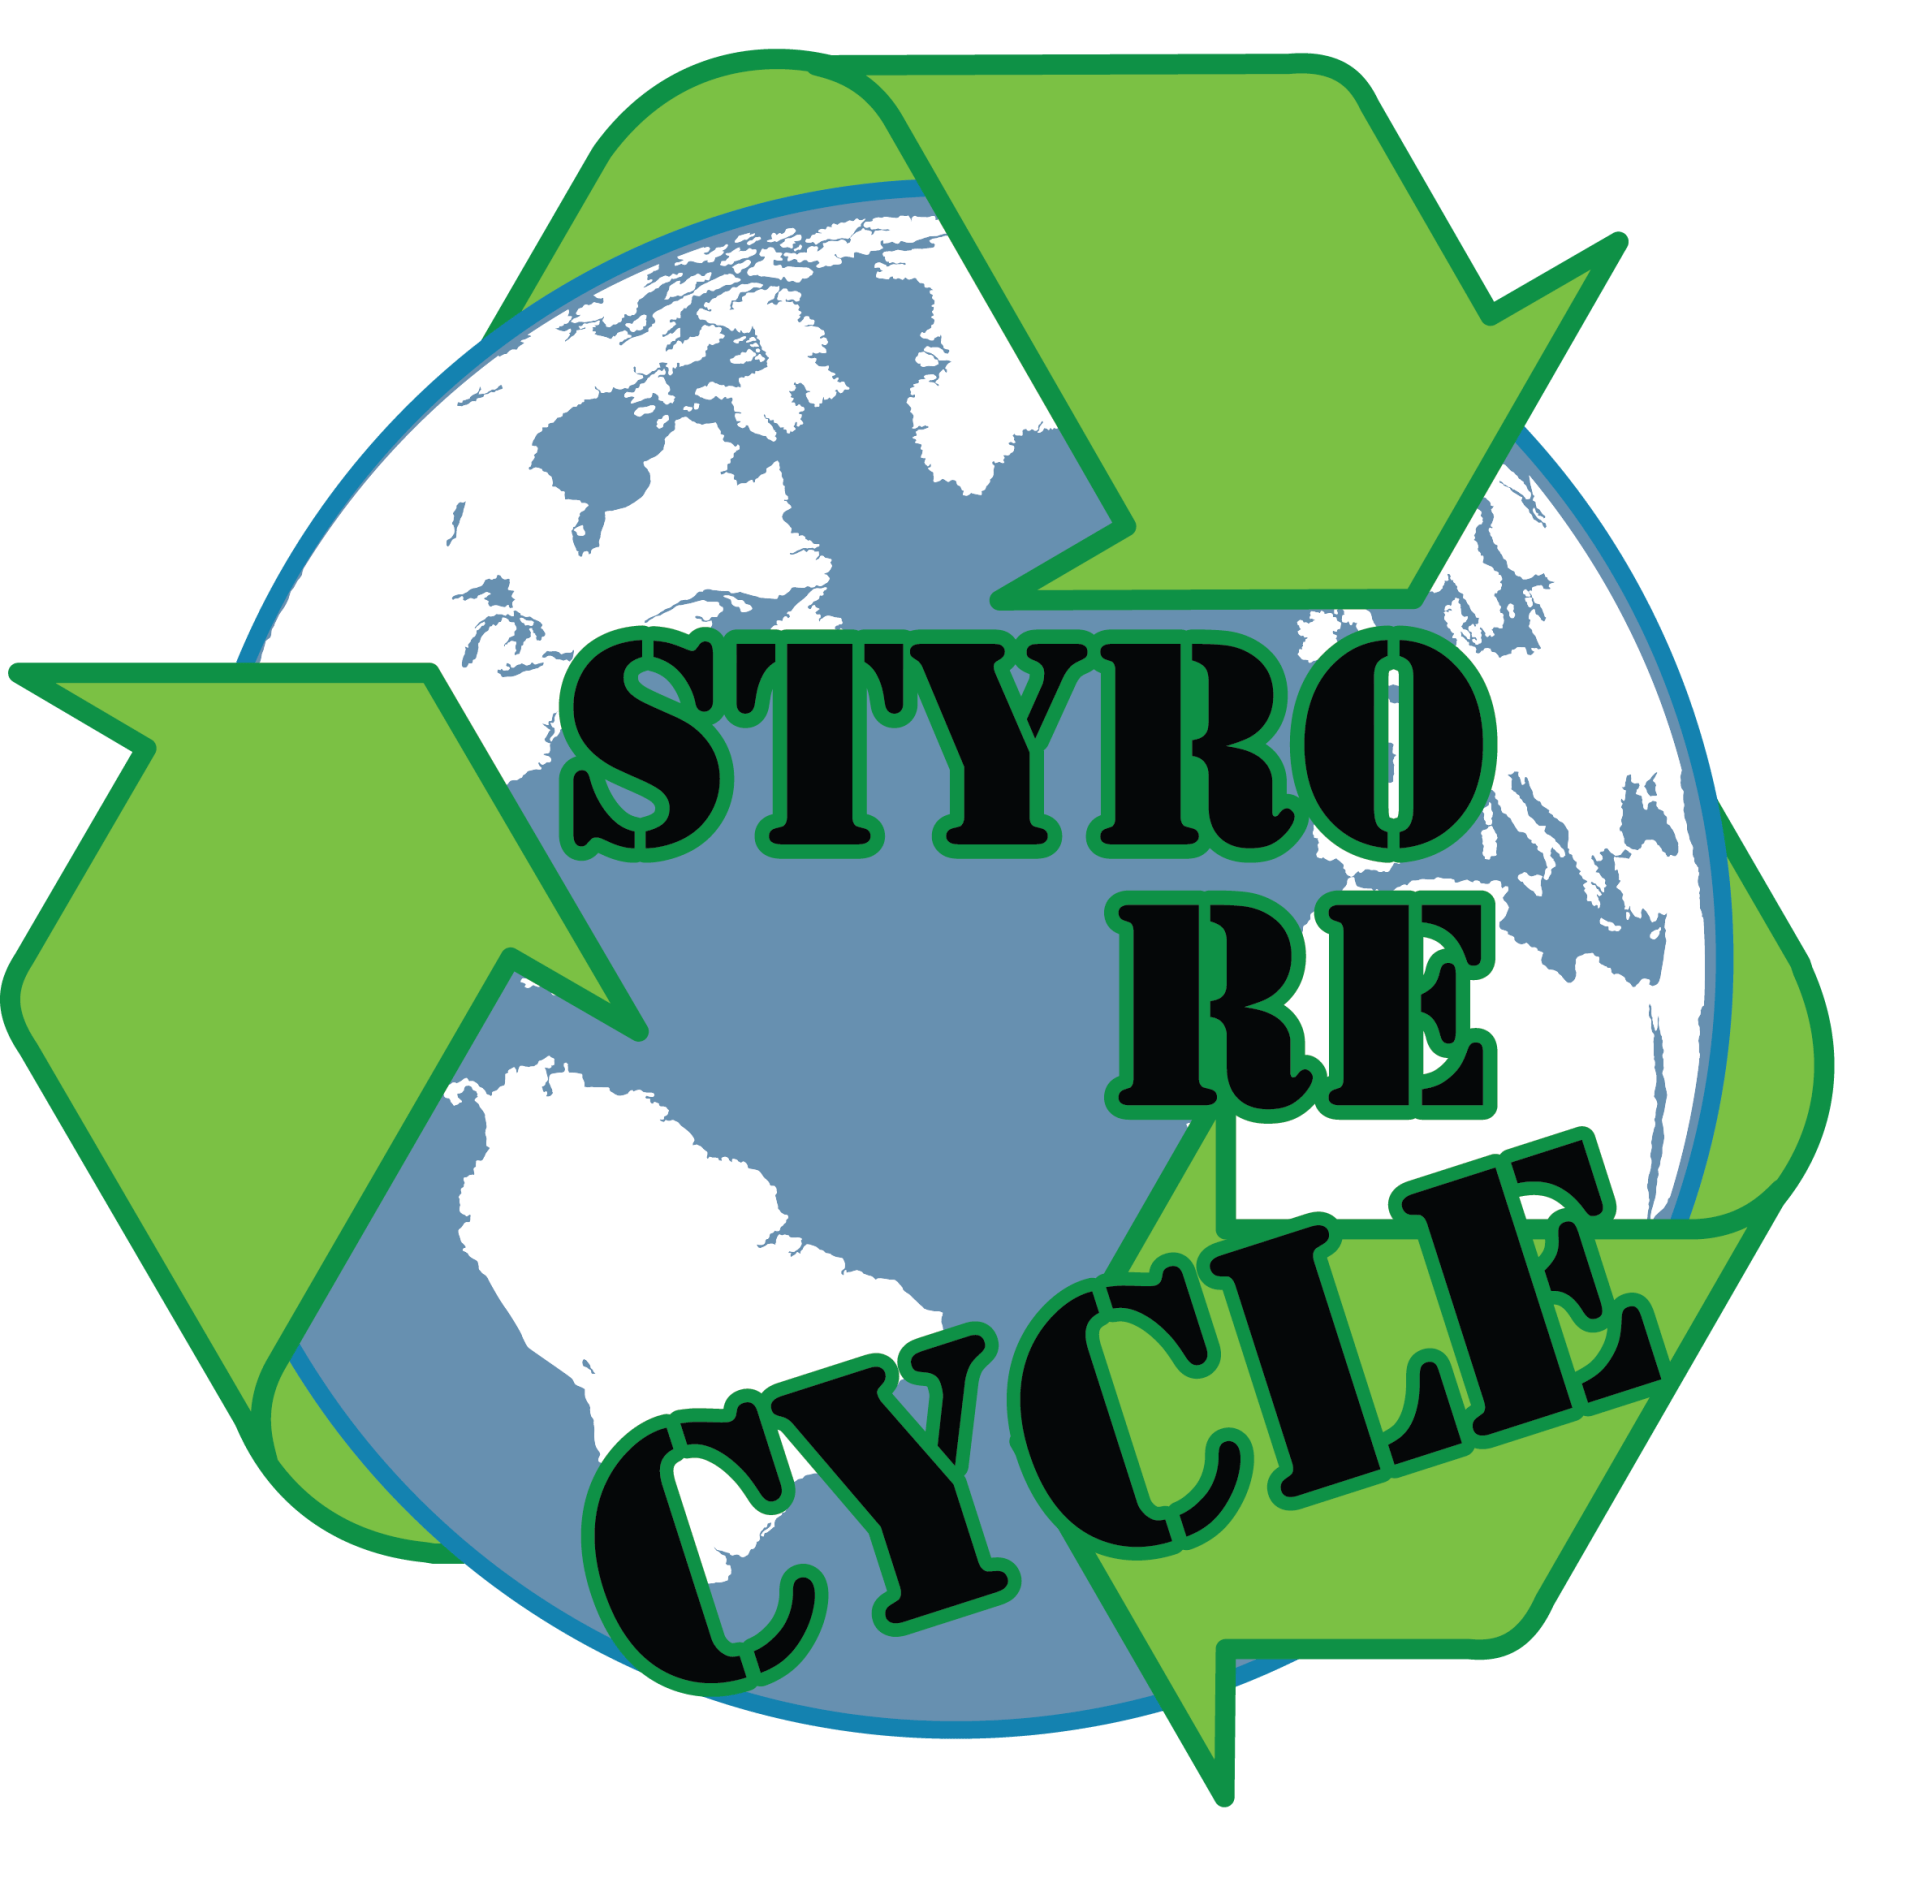 Yes You Can Recycle Styrofoam